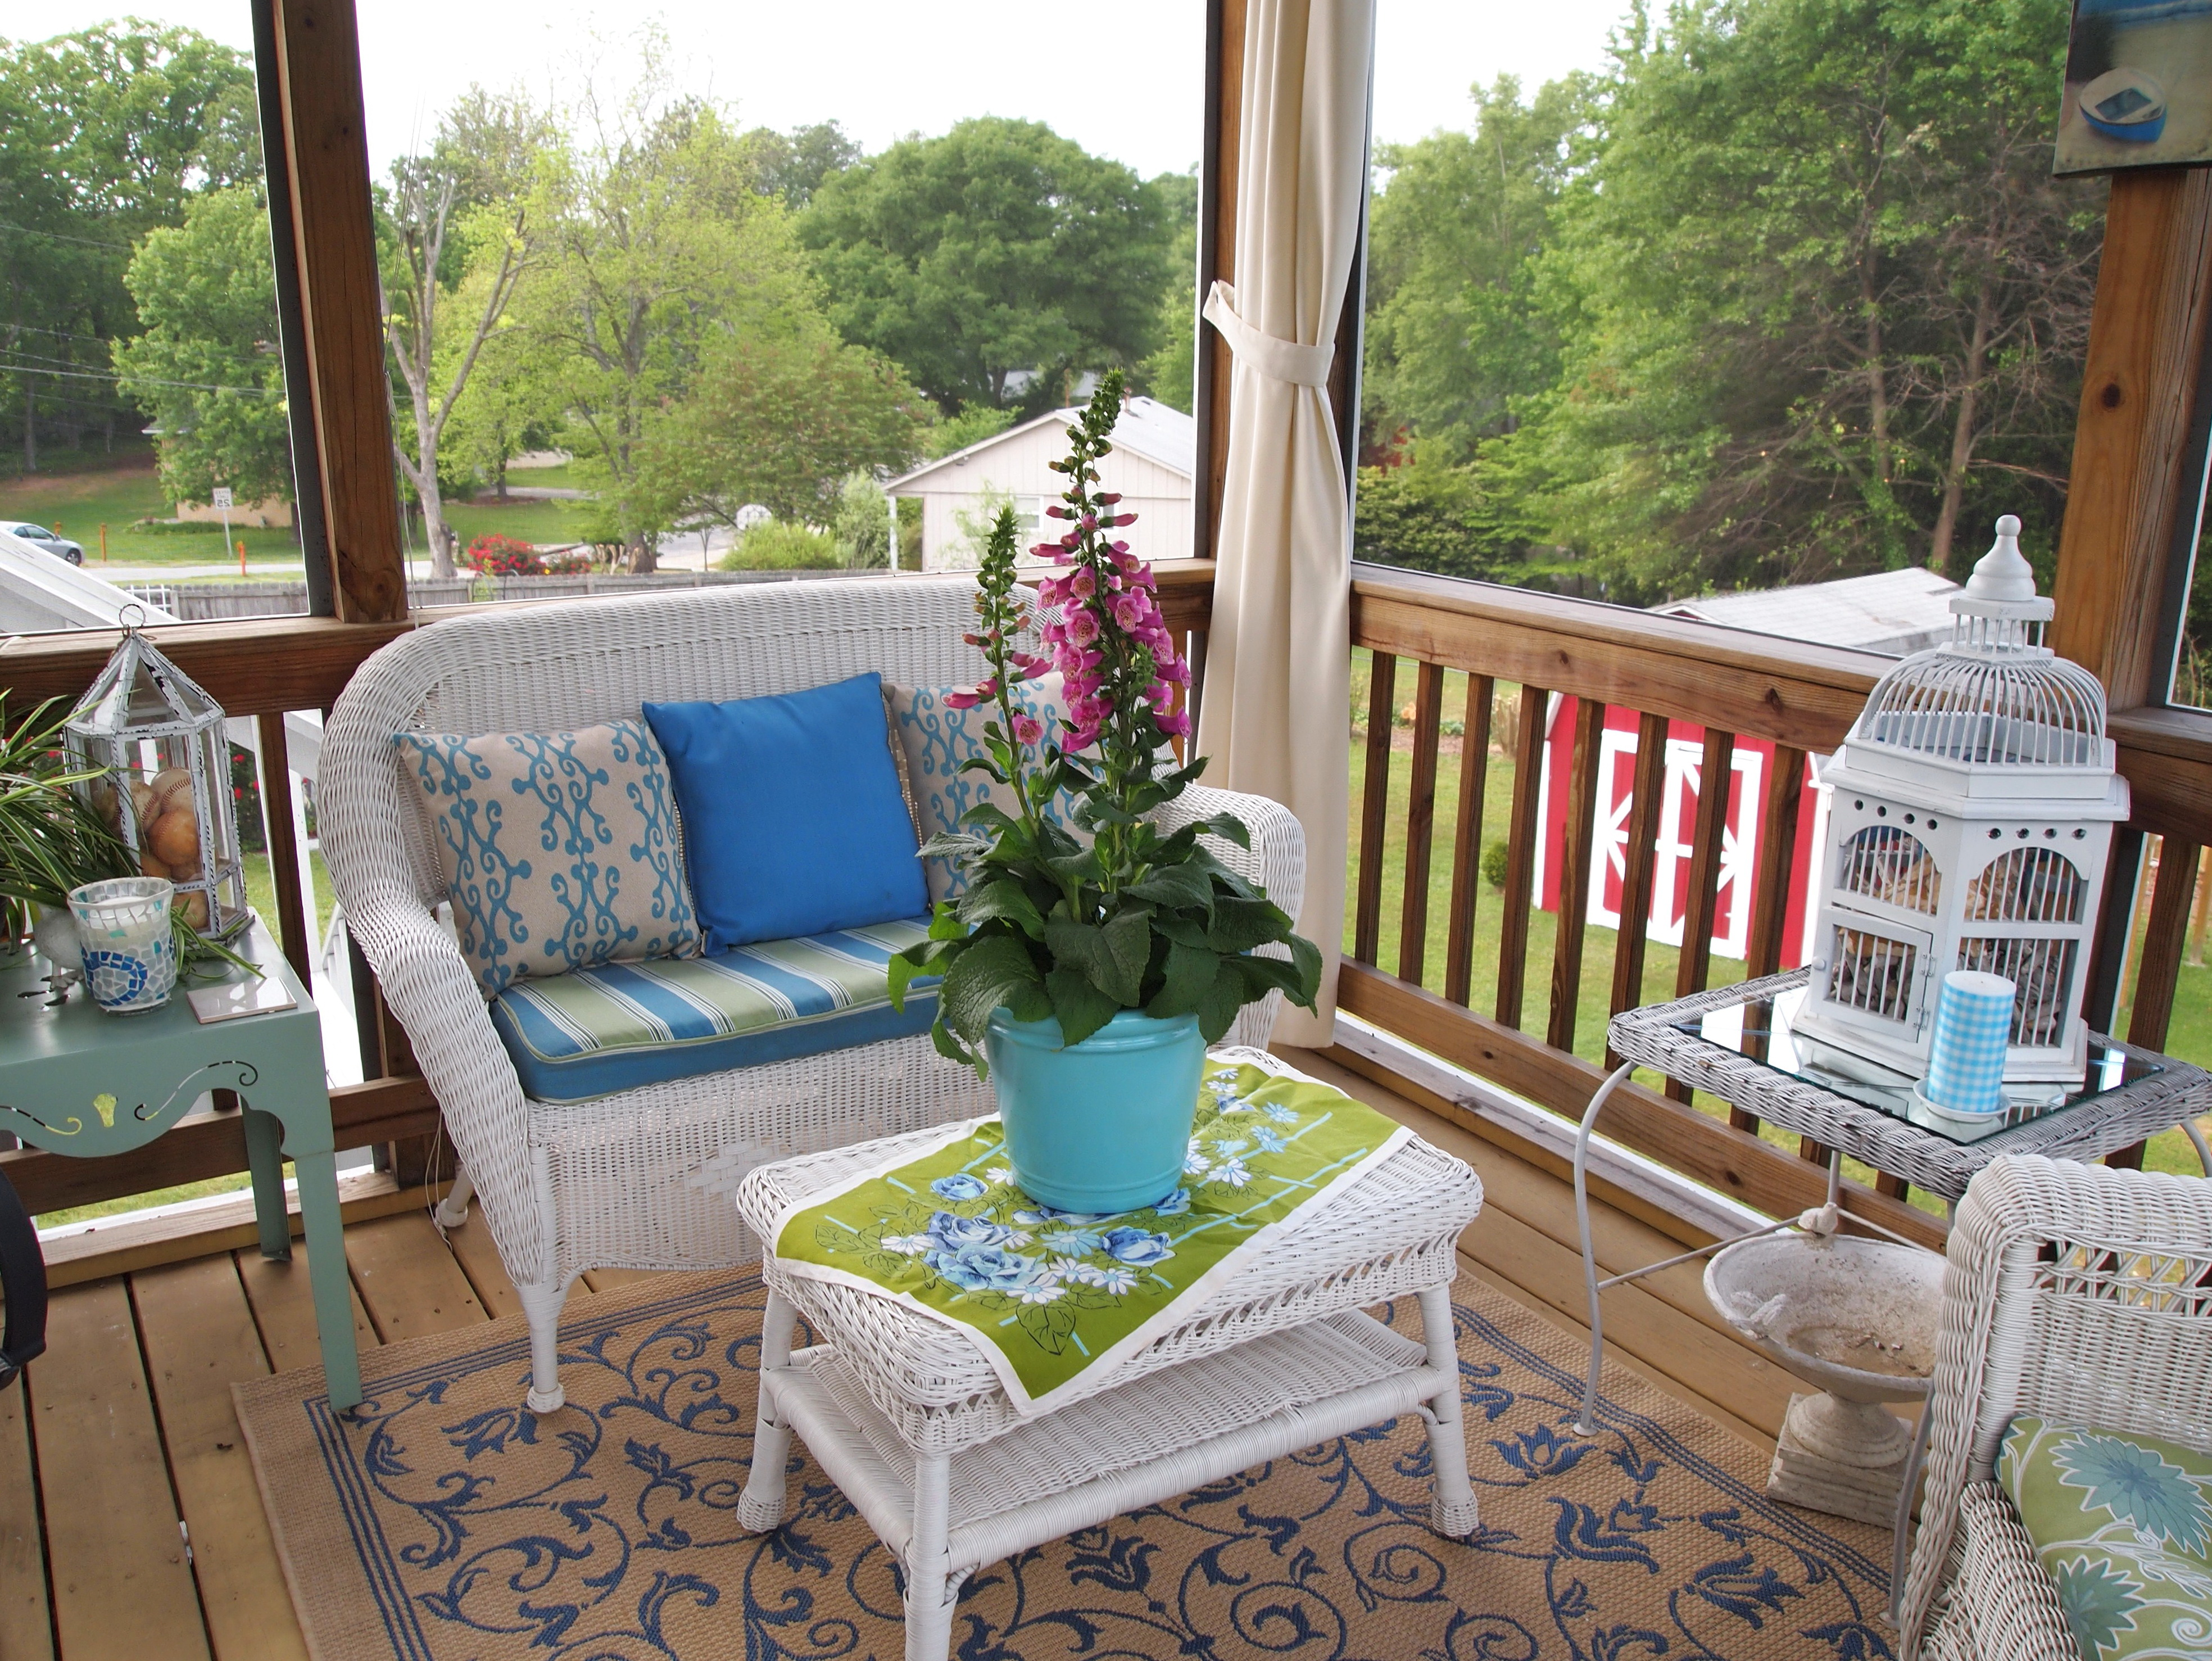 http://www.accessnw.org/wp-content/uploads/2015/11/screen-porch-decorating-ideas.jpg